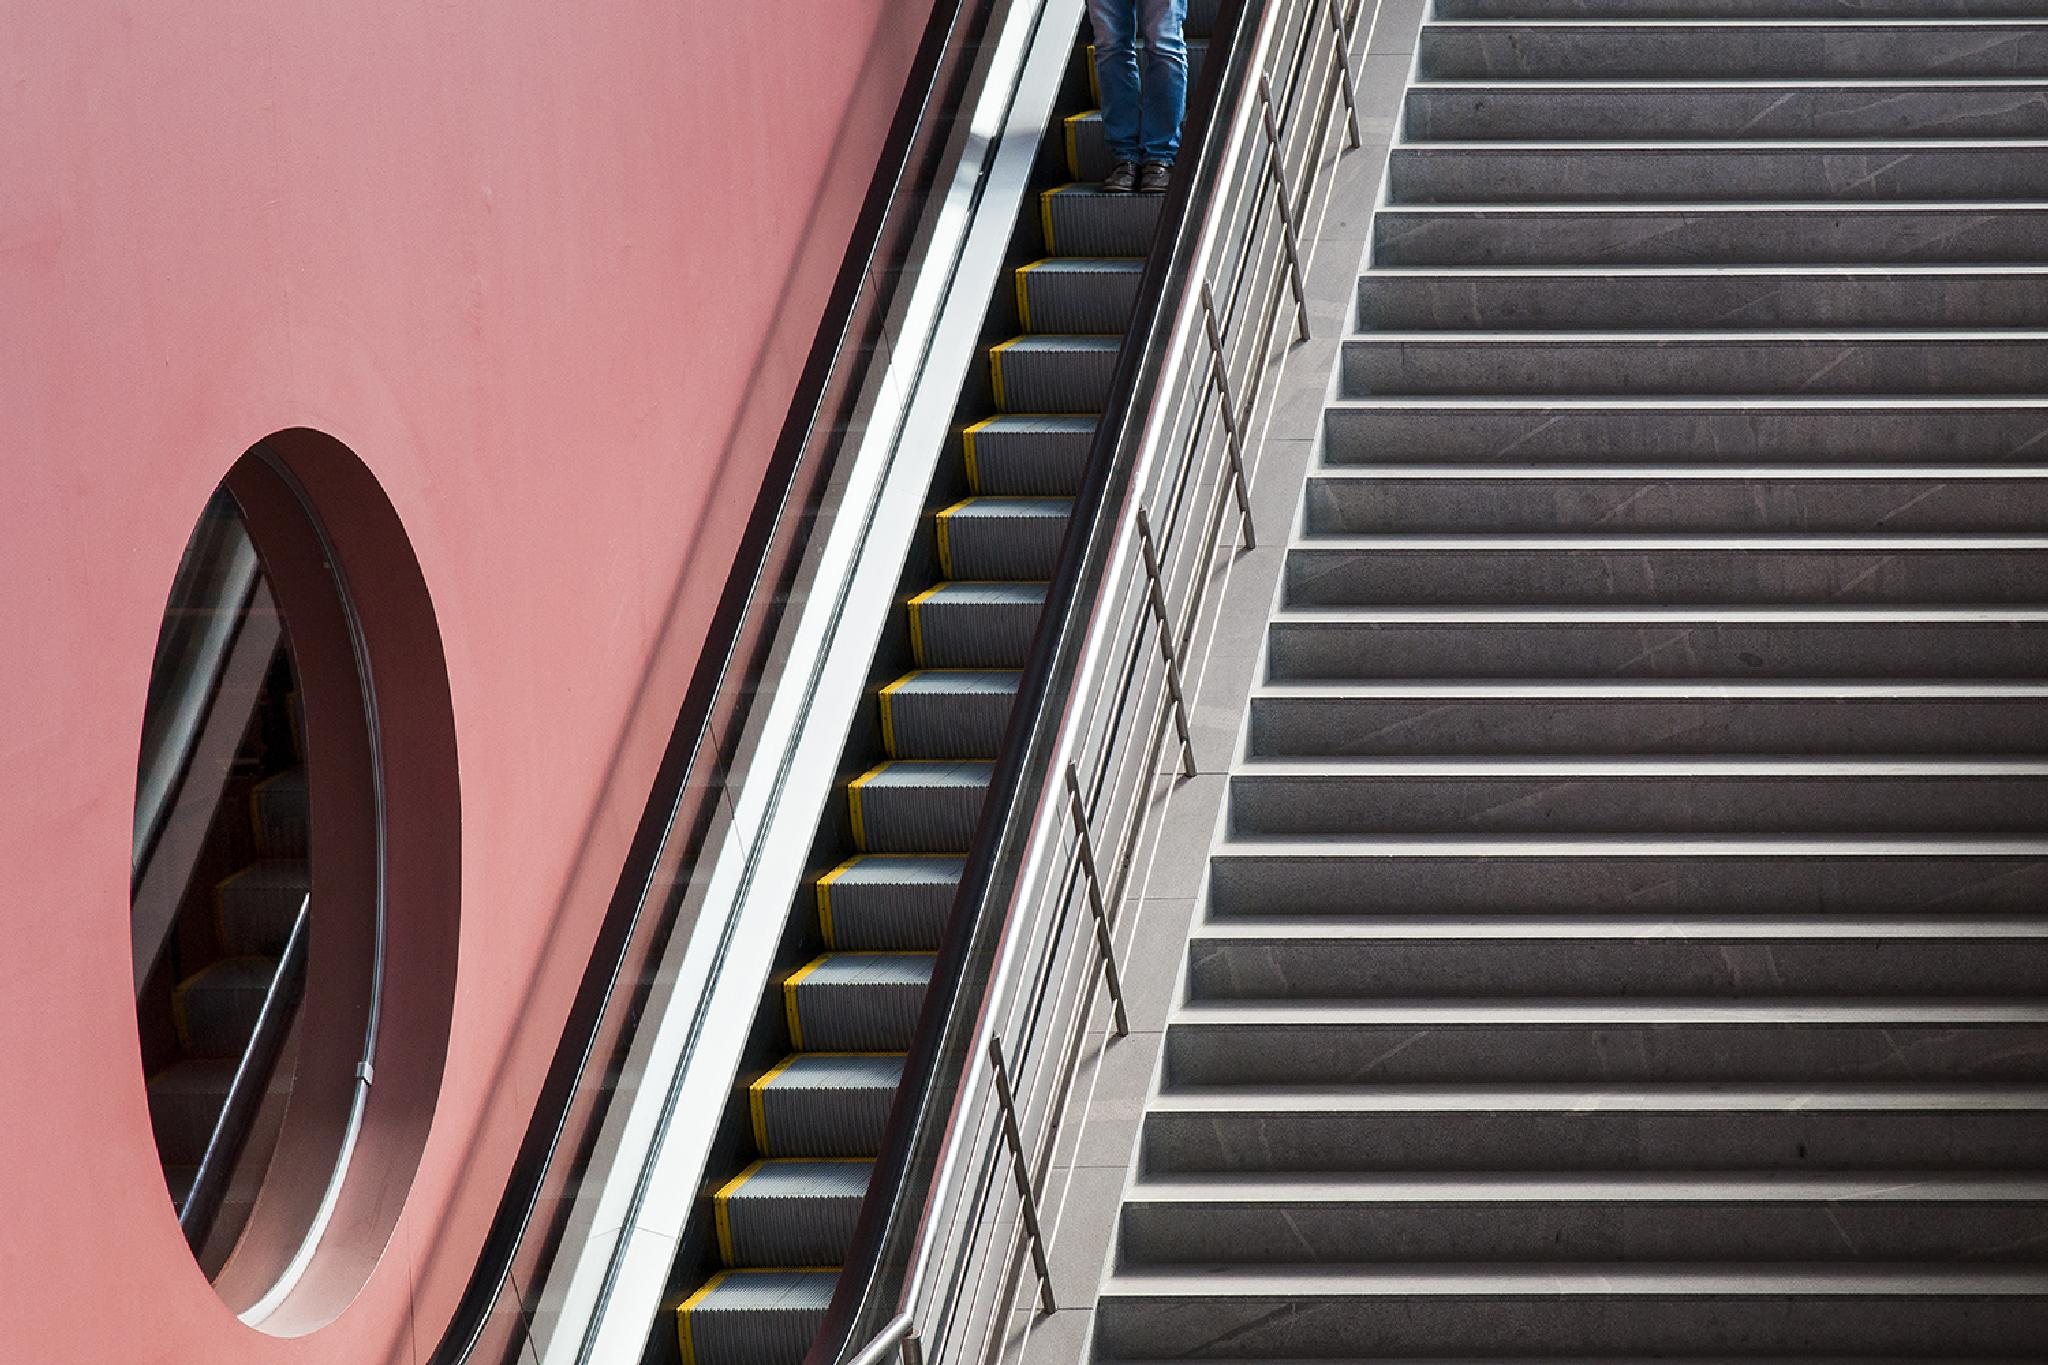 Staircase by Jurij